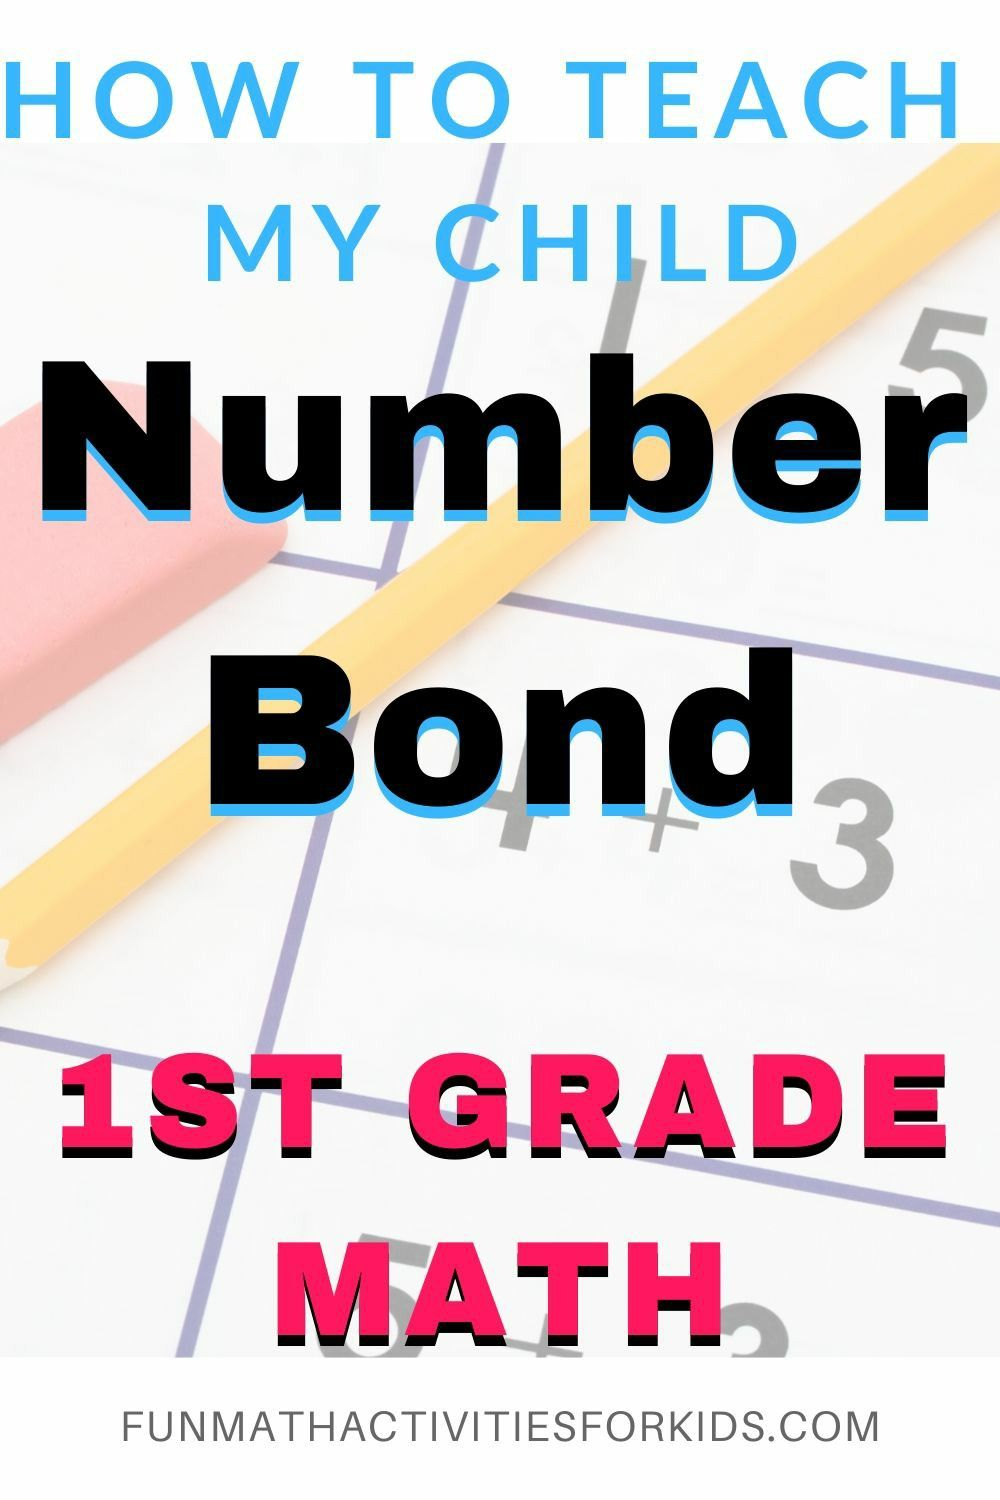 What Is A Number Bond The Simple Guide For Grade 1 Addition Number Bond 1st Grade Math Teaching [ 1500 x 1000 Pixel ]